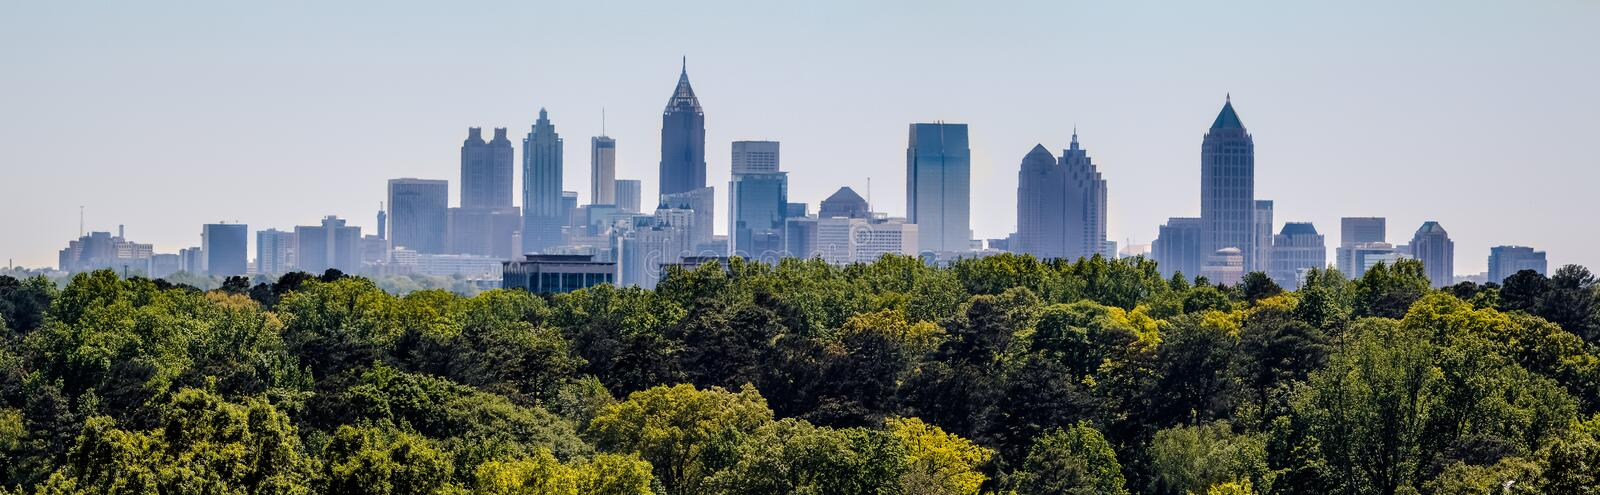 A view of the downtown Atlanta skyline from Buckhead. Downtown Atlanta Skyline showing several prominent buildings and hotels under a blue sky as seen from royalty free stock image